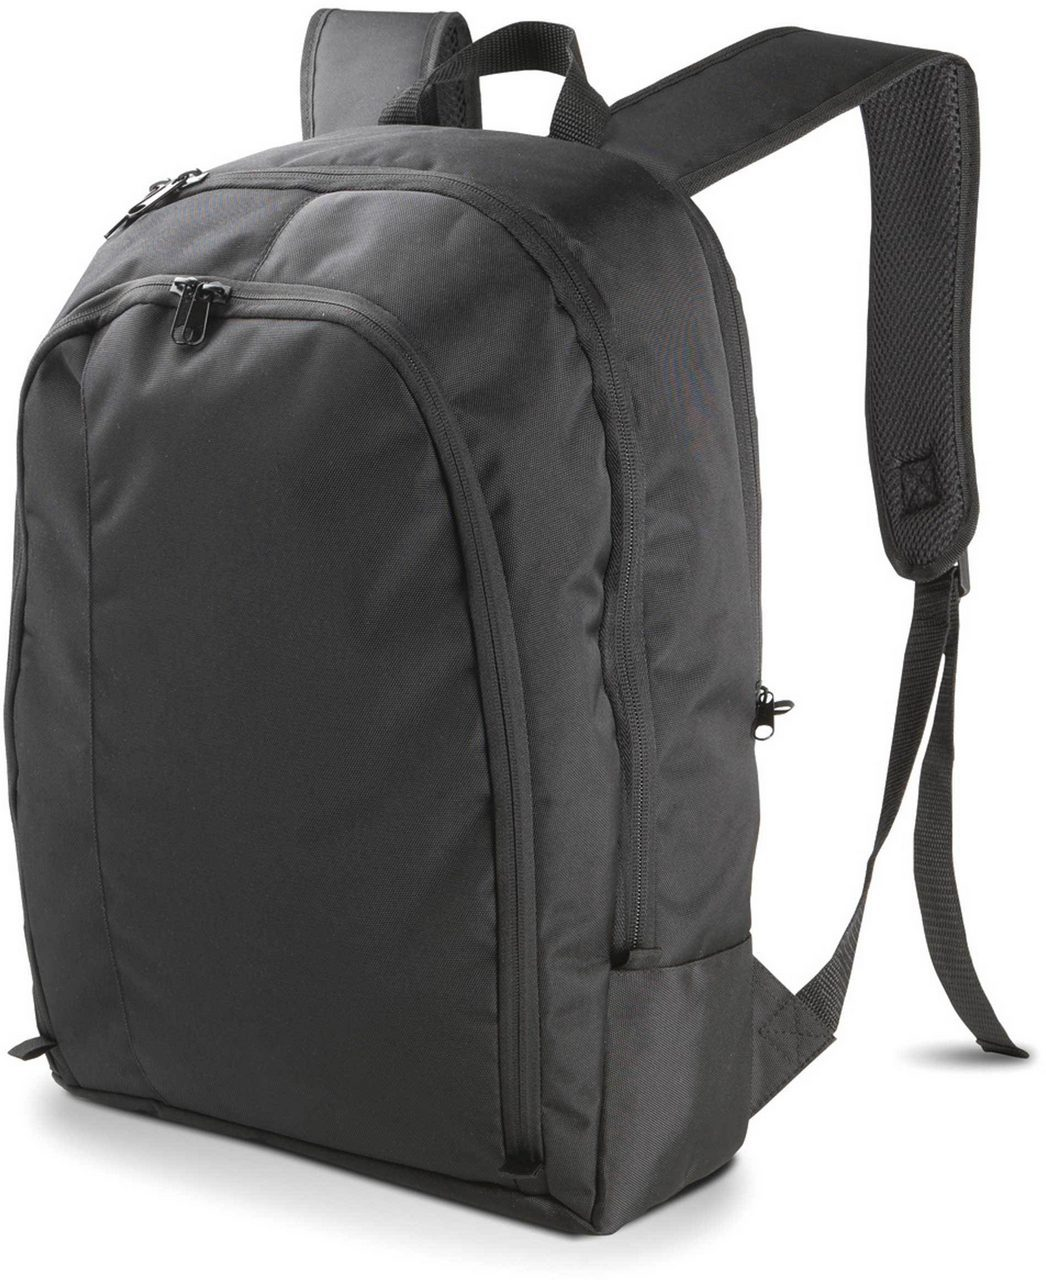 "15\ LAPTOP BACKPACK"" - BRANIO"